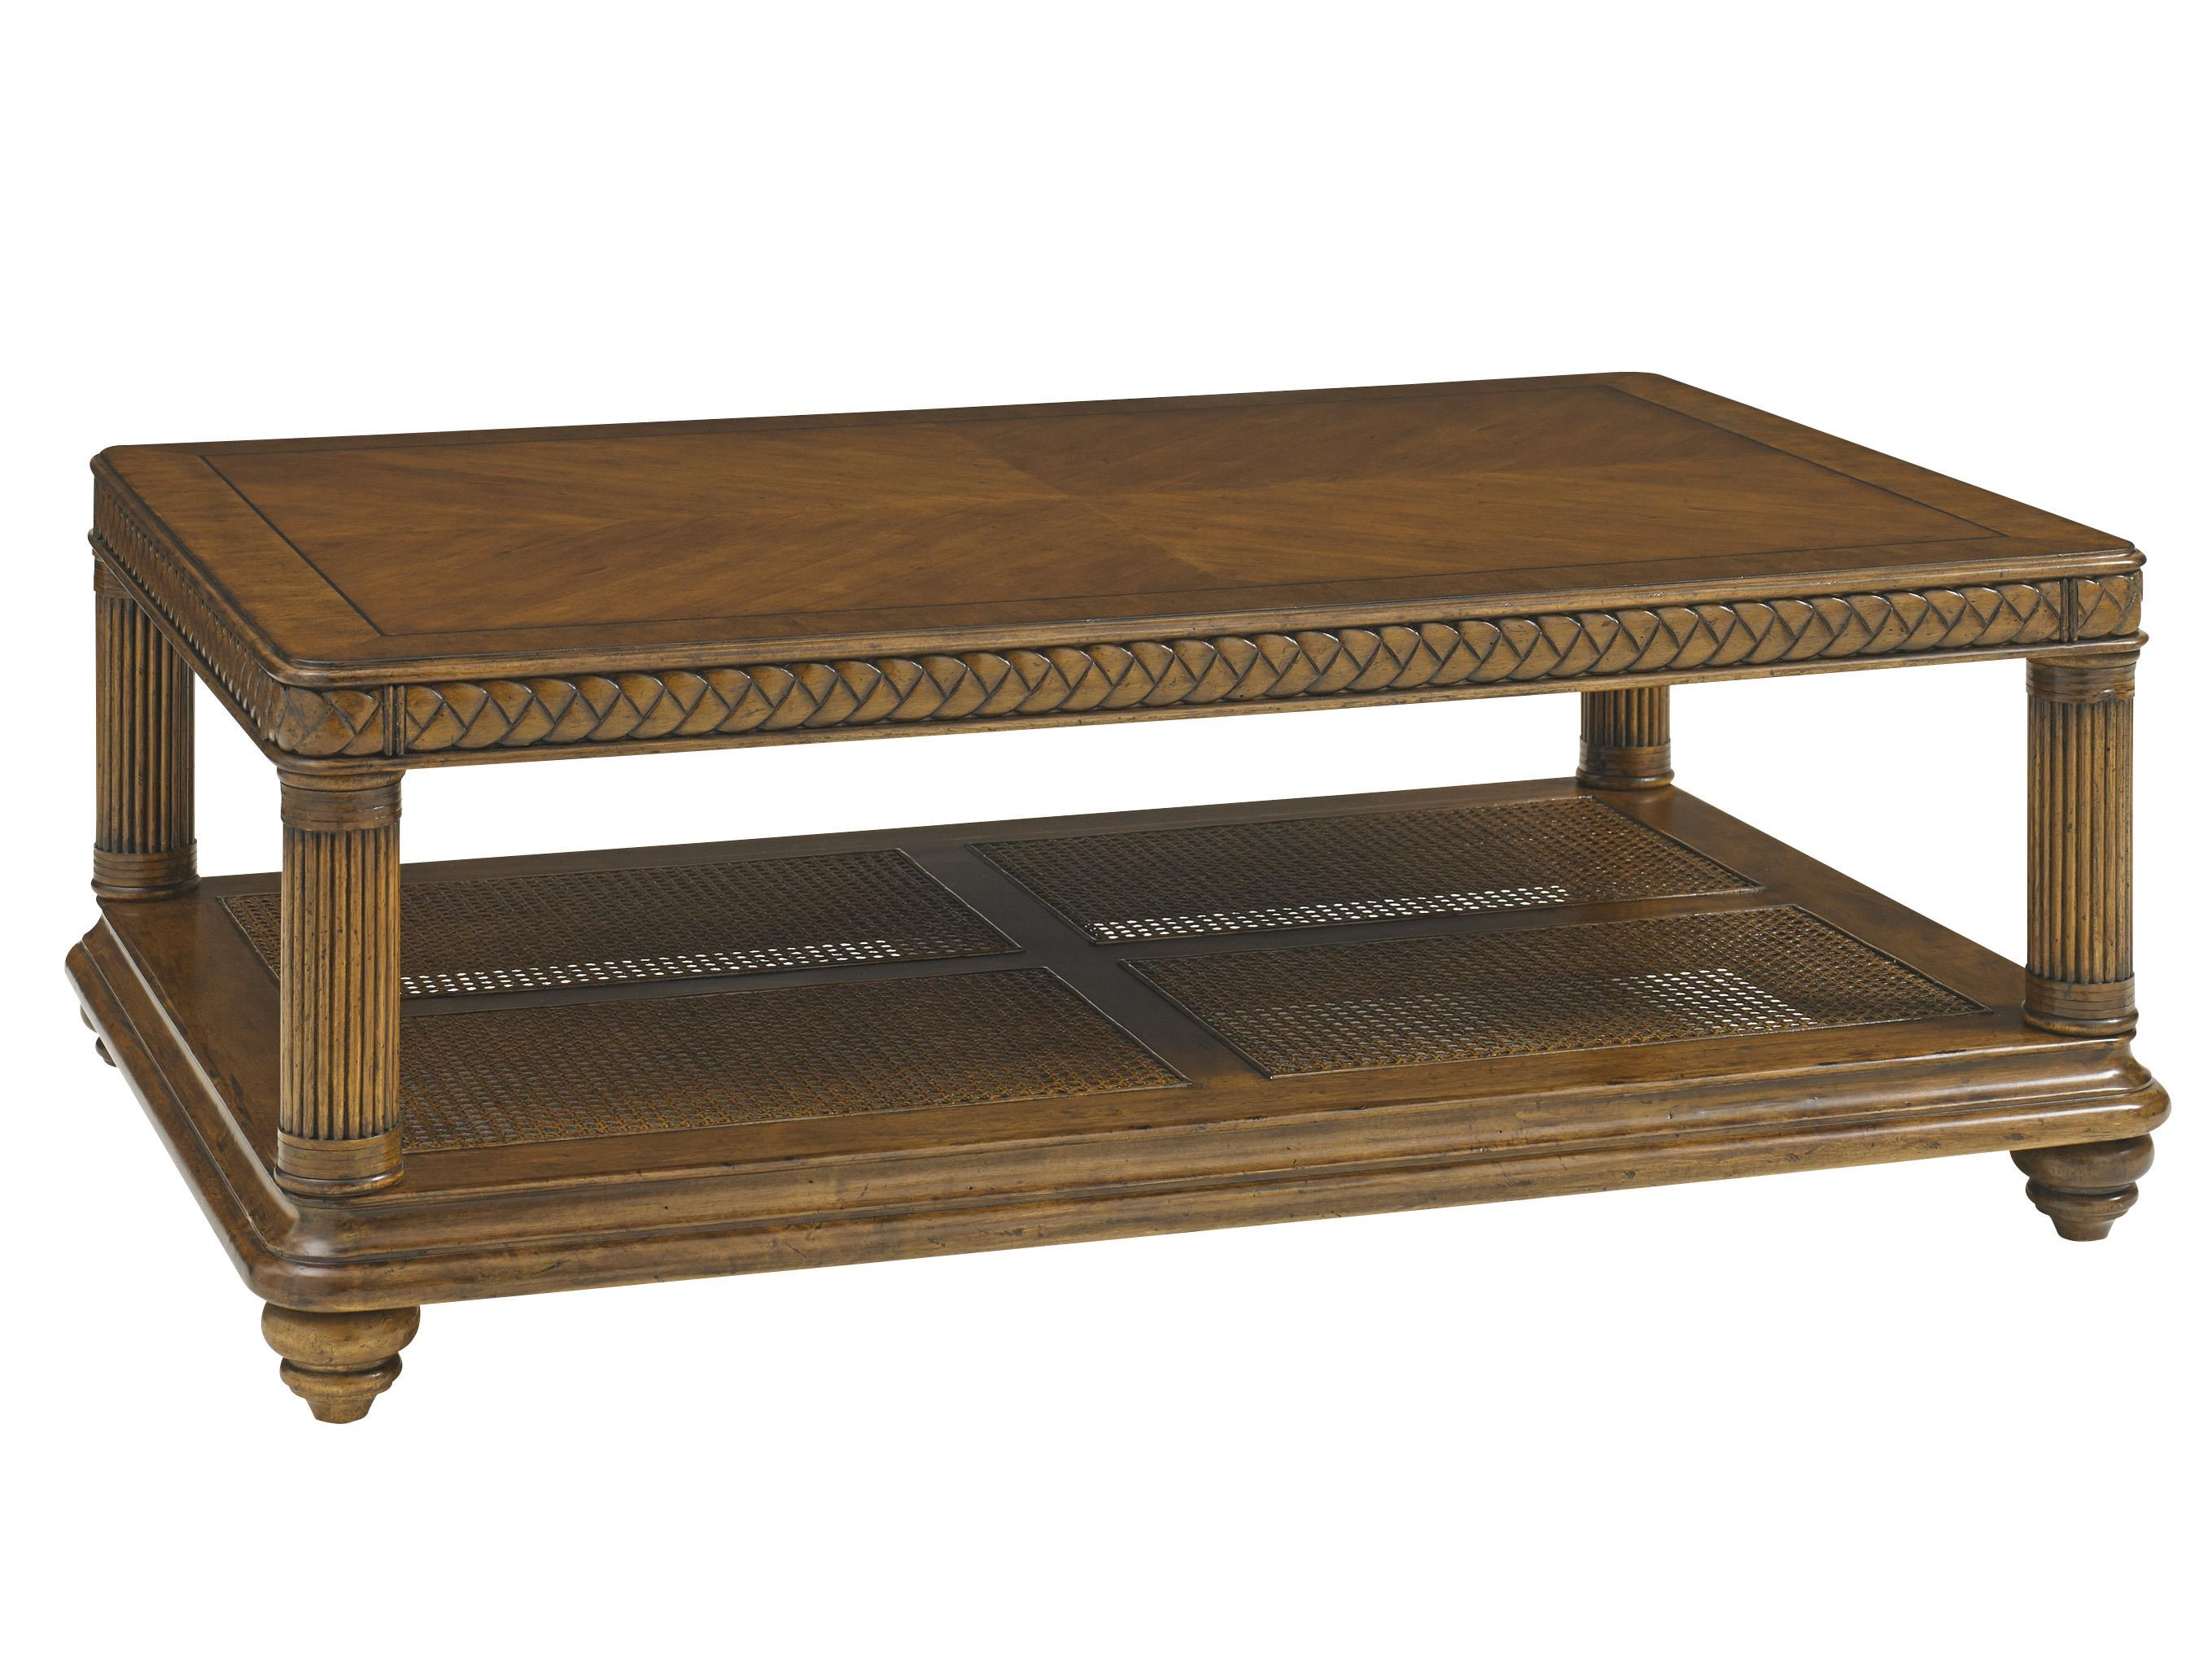 Bali Hai Vineyard Point Rectangular Cocktail Table by Tommy Bahama Home at Baer's Furniture